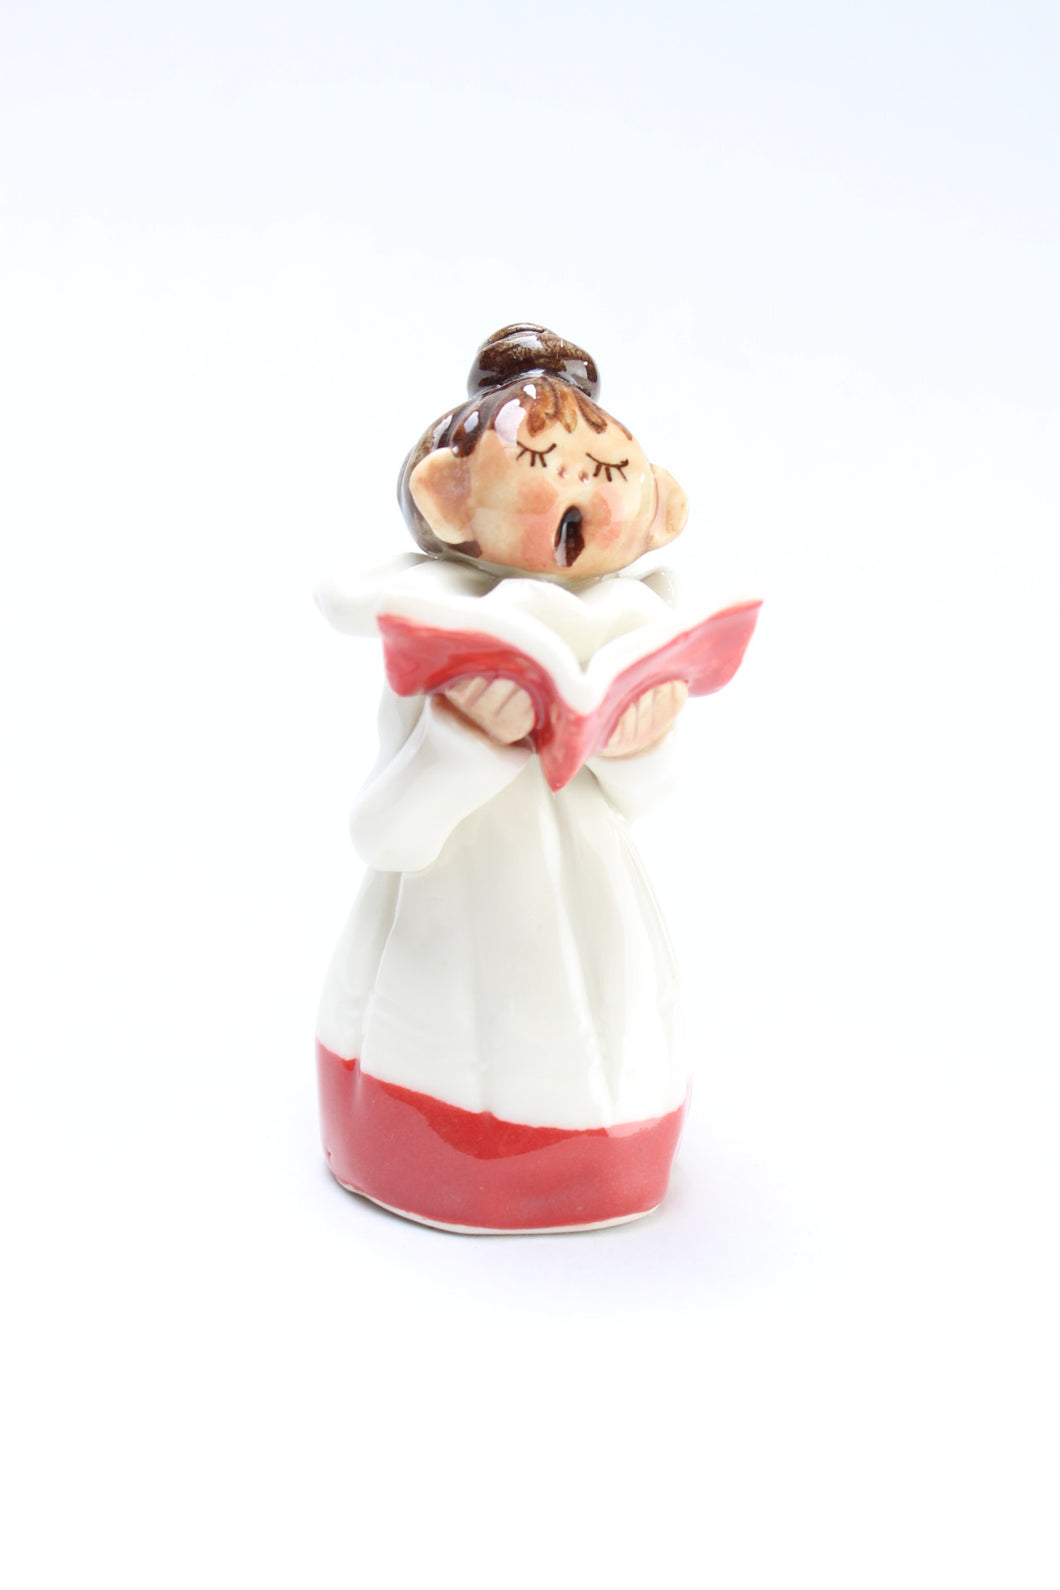 Abbey Crafts - Tall Girl Carol Singer with Brown Hair and Top Knot